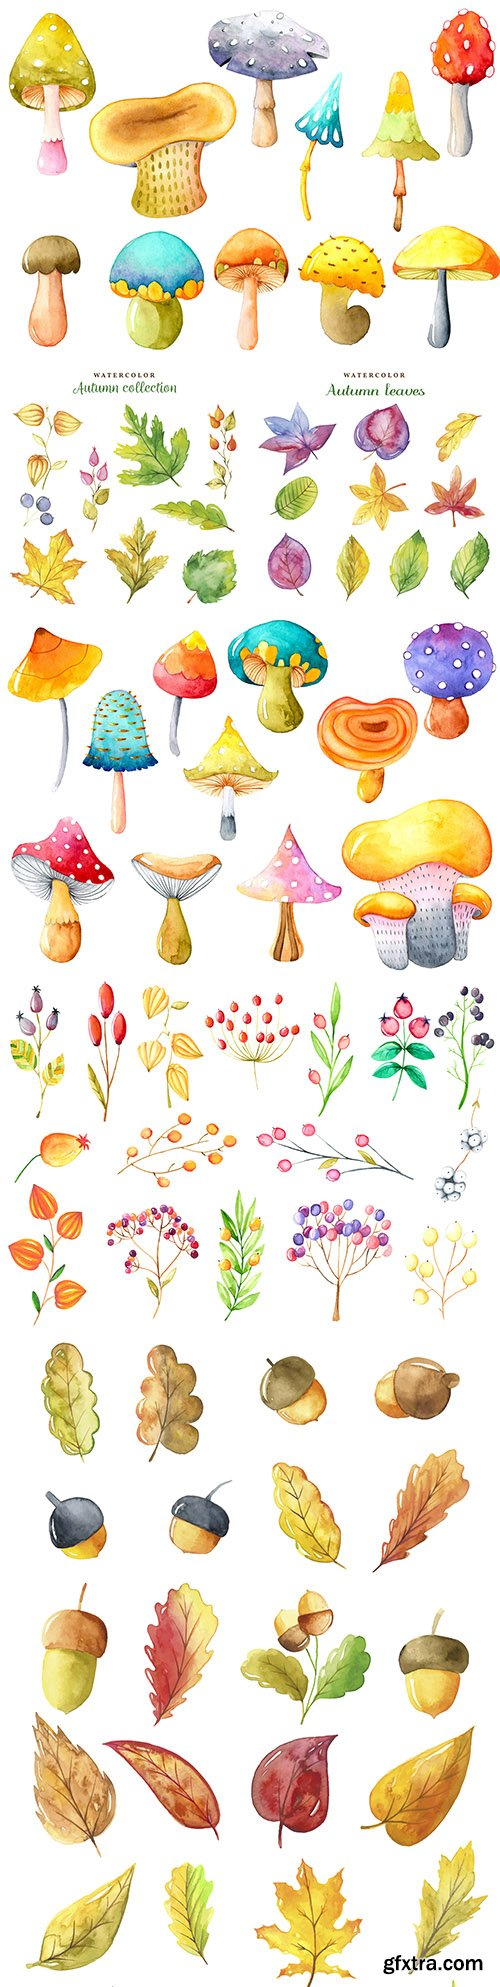 Mushrooms and autumn leaves collection watercolors